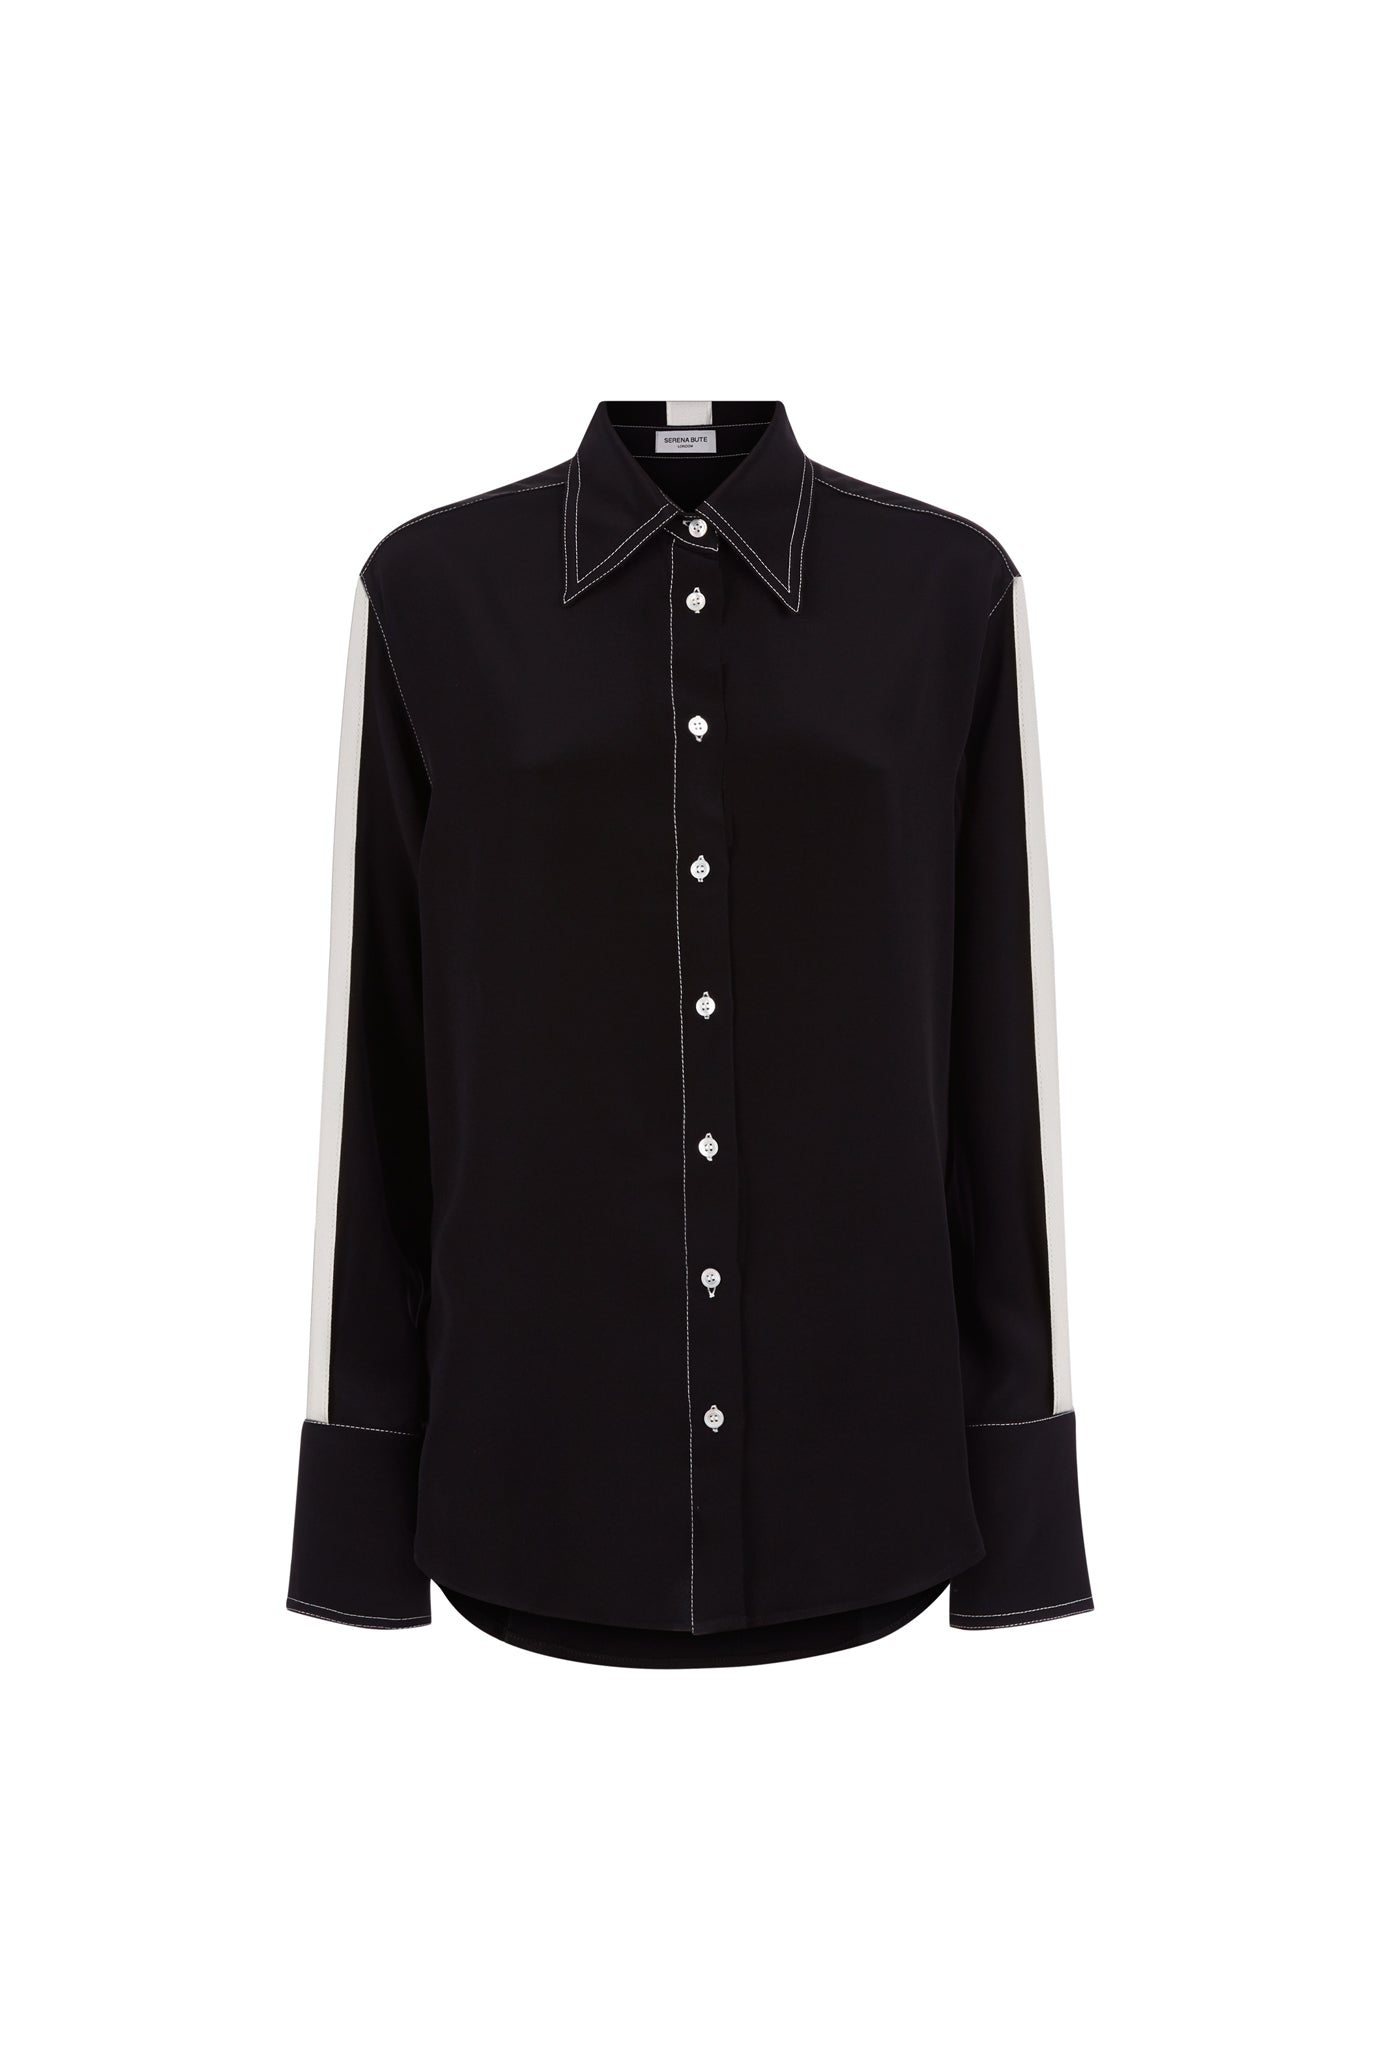 The Oversized Shirt - Black & White Stripe Silk - SERENA BUTE